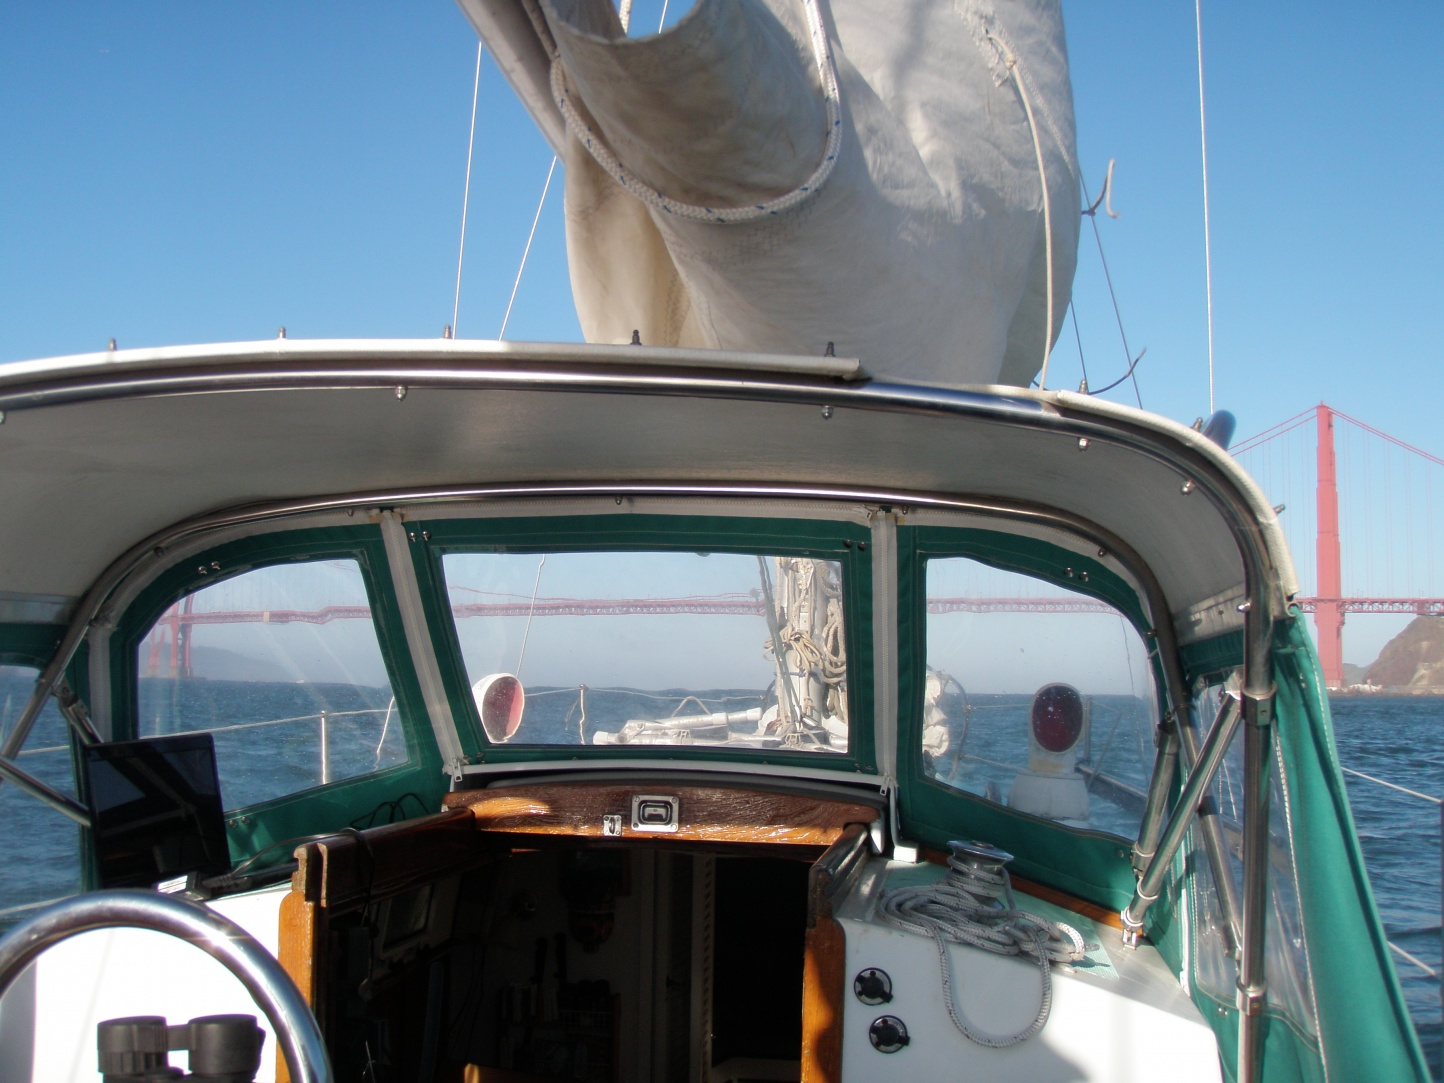 For Sale: Alberg Odyssey 30 Yawl For Sale - Cruisers & Sailing Forums